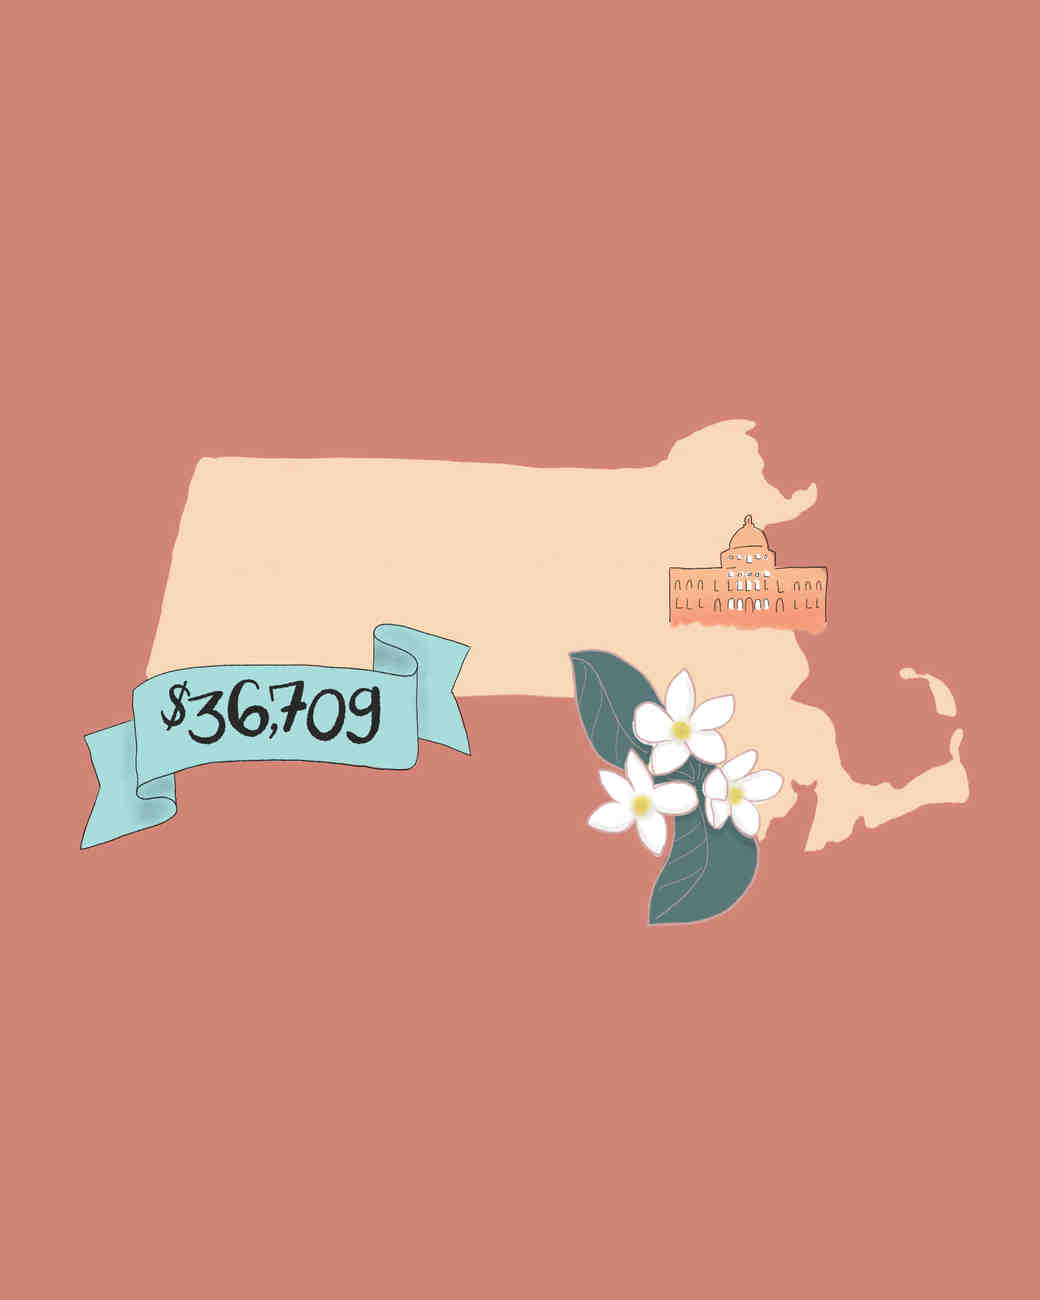 state wedding costs illustration massachusetts